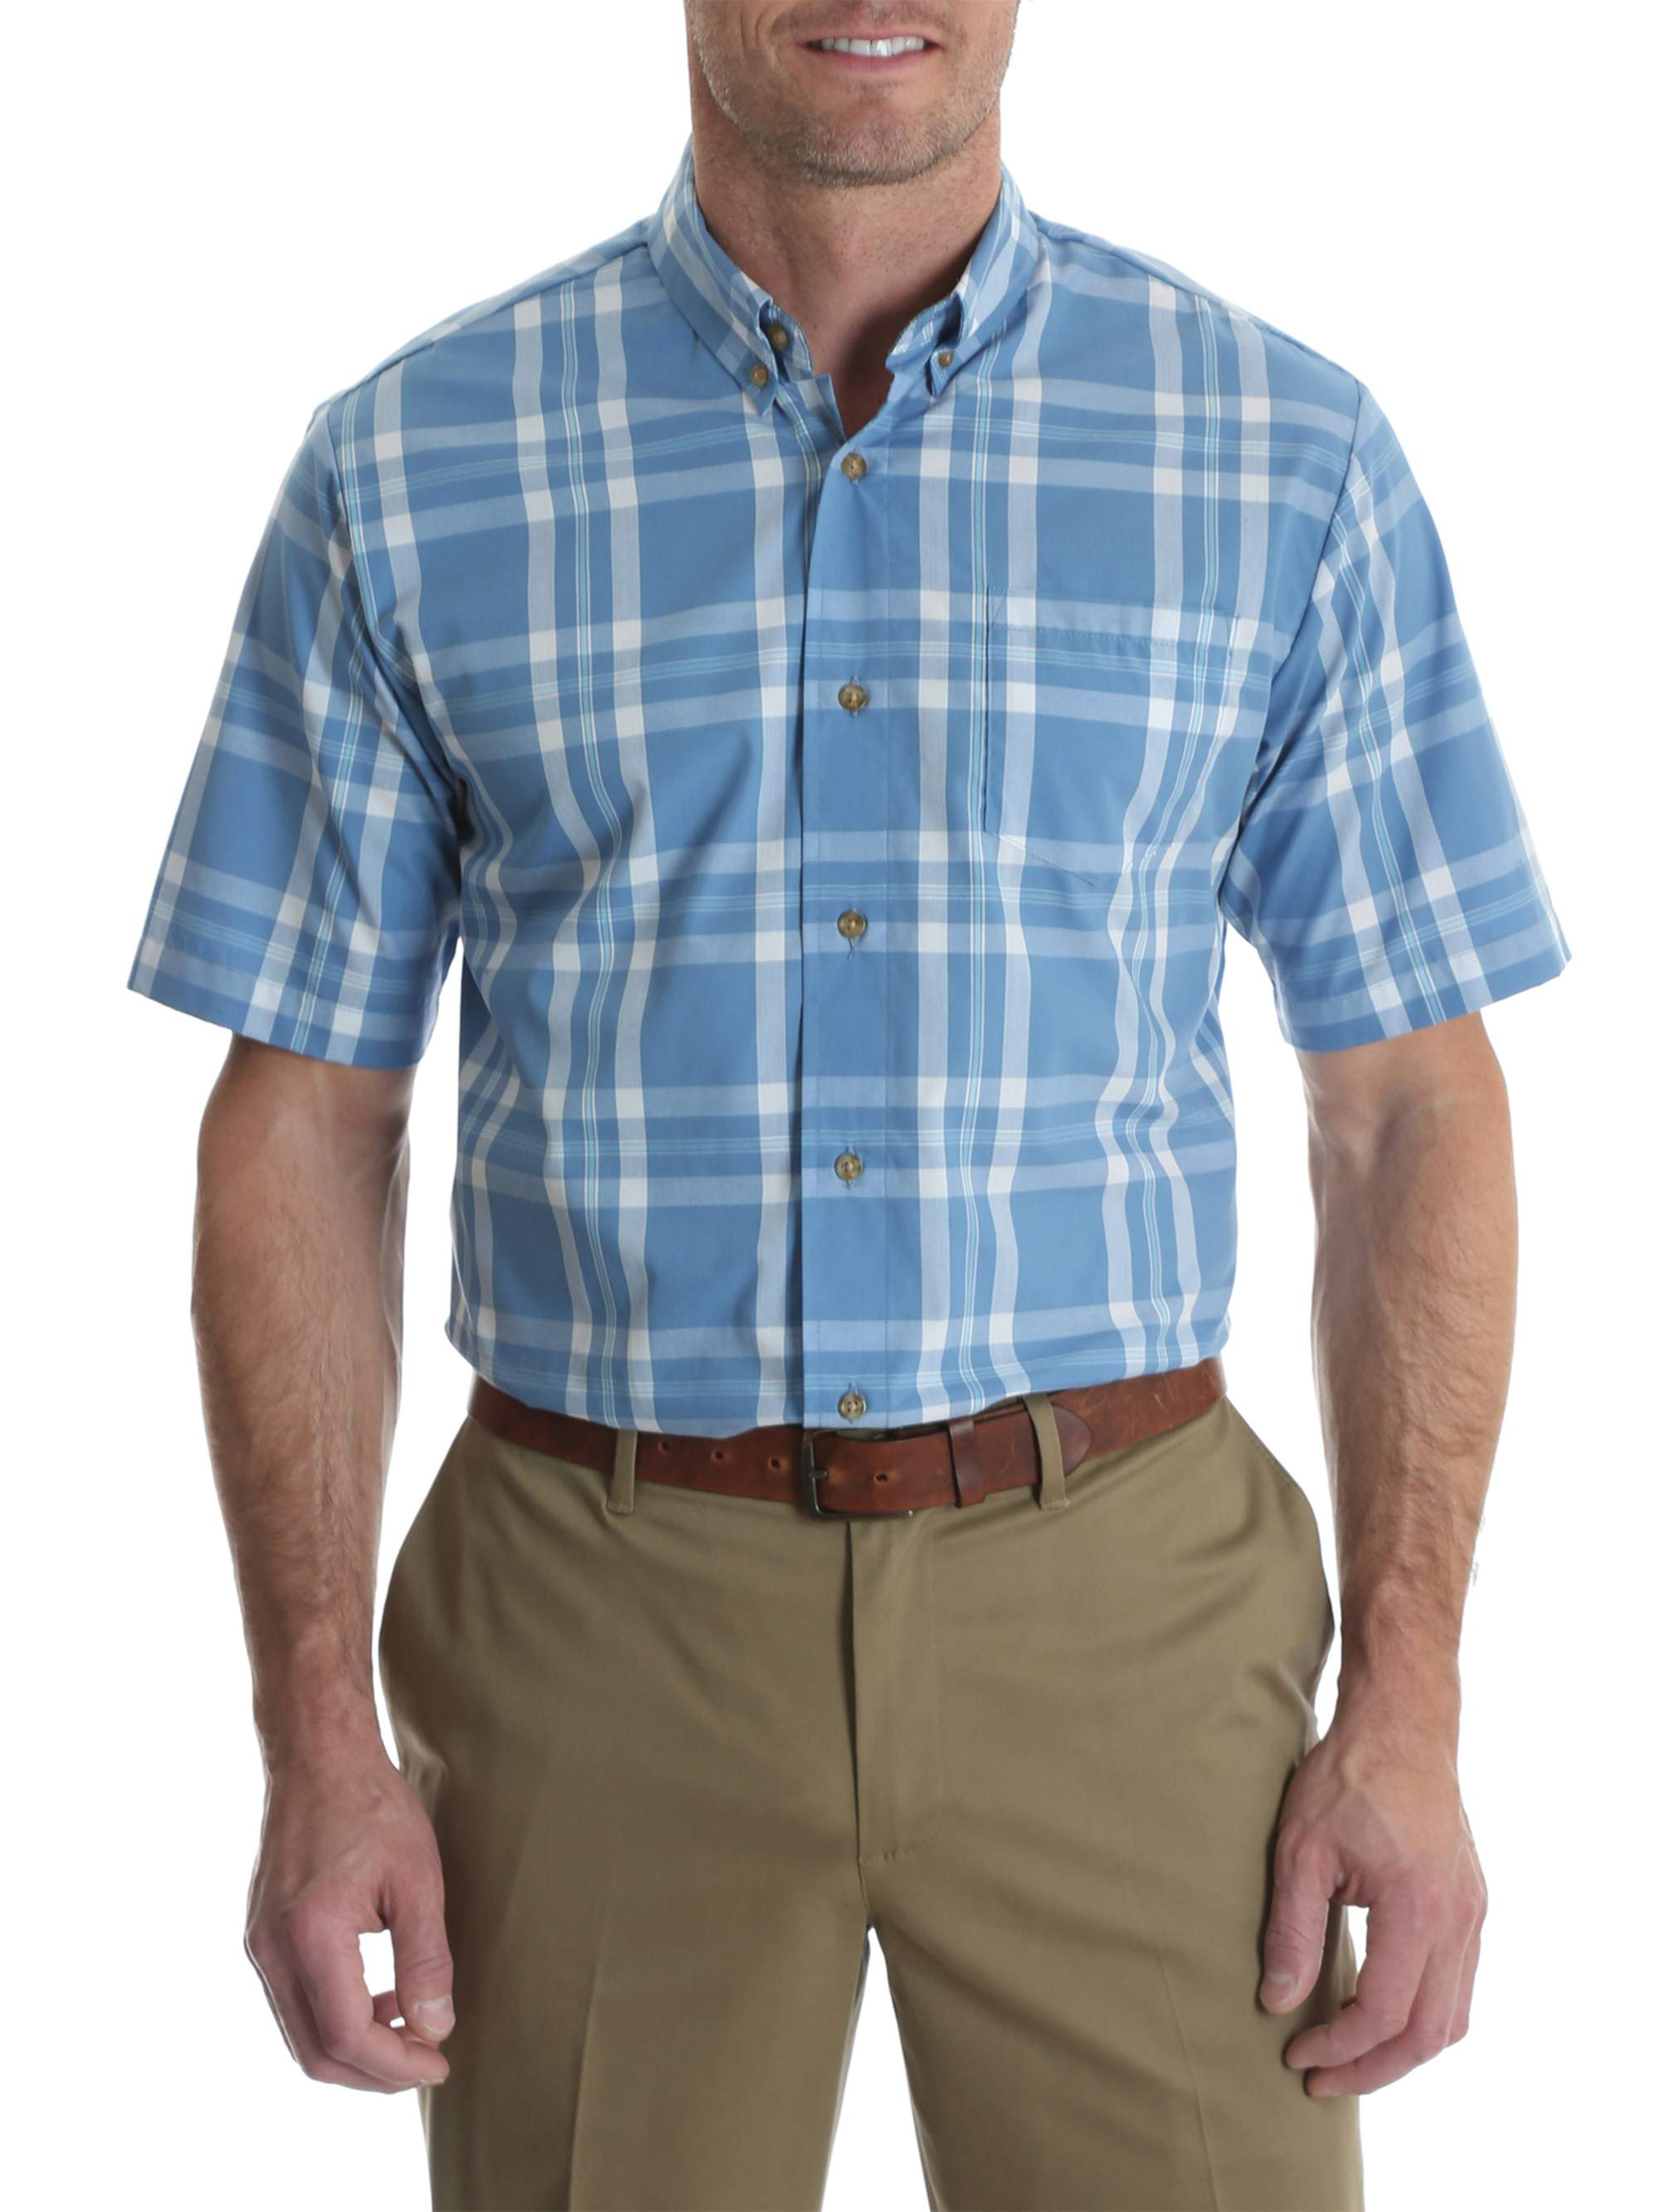 Big Men's Short Sleeve Wrinkle Resist Plaid Shirt